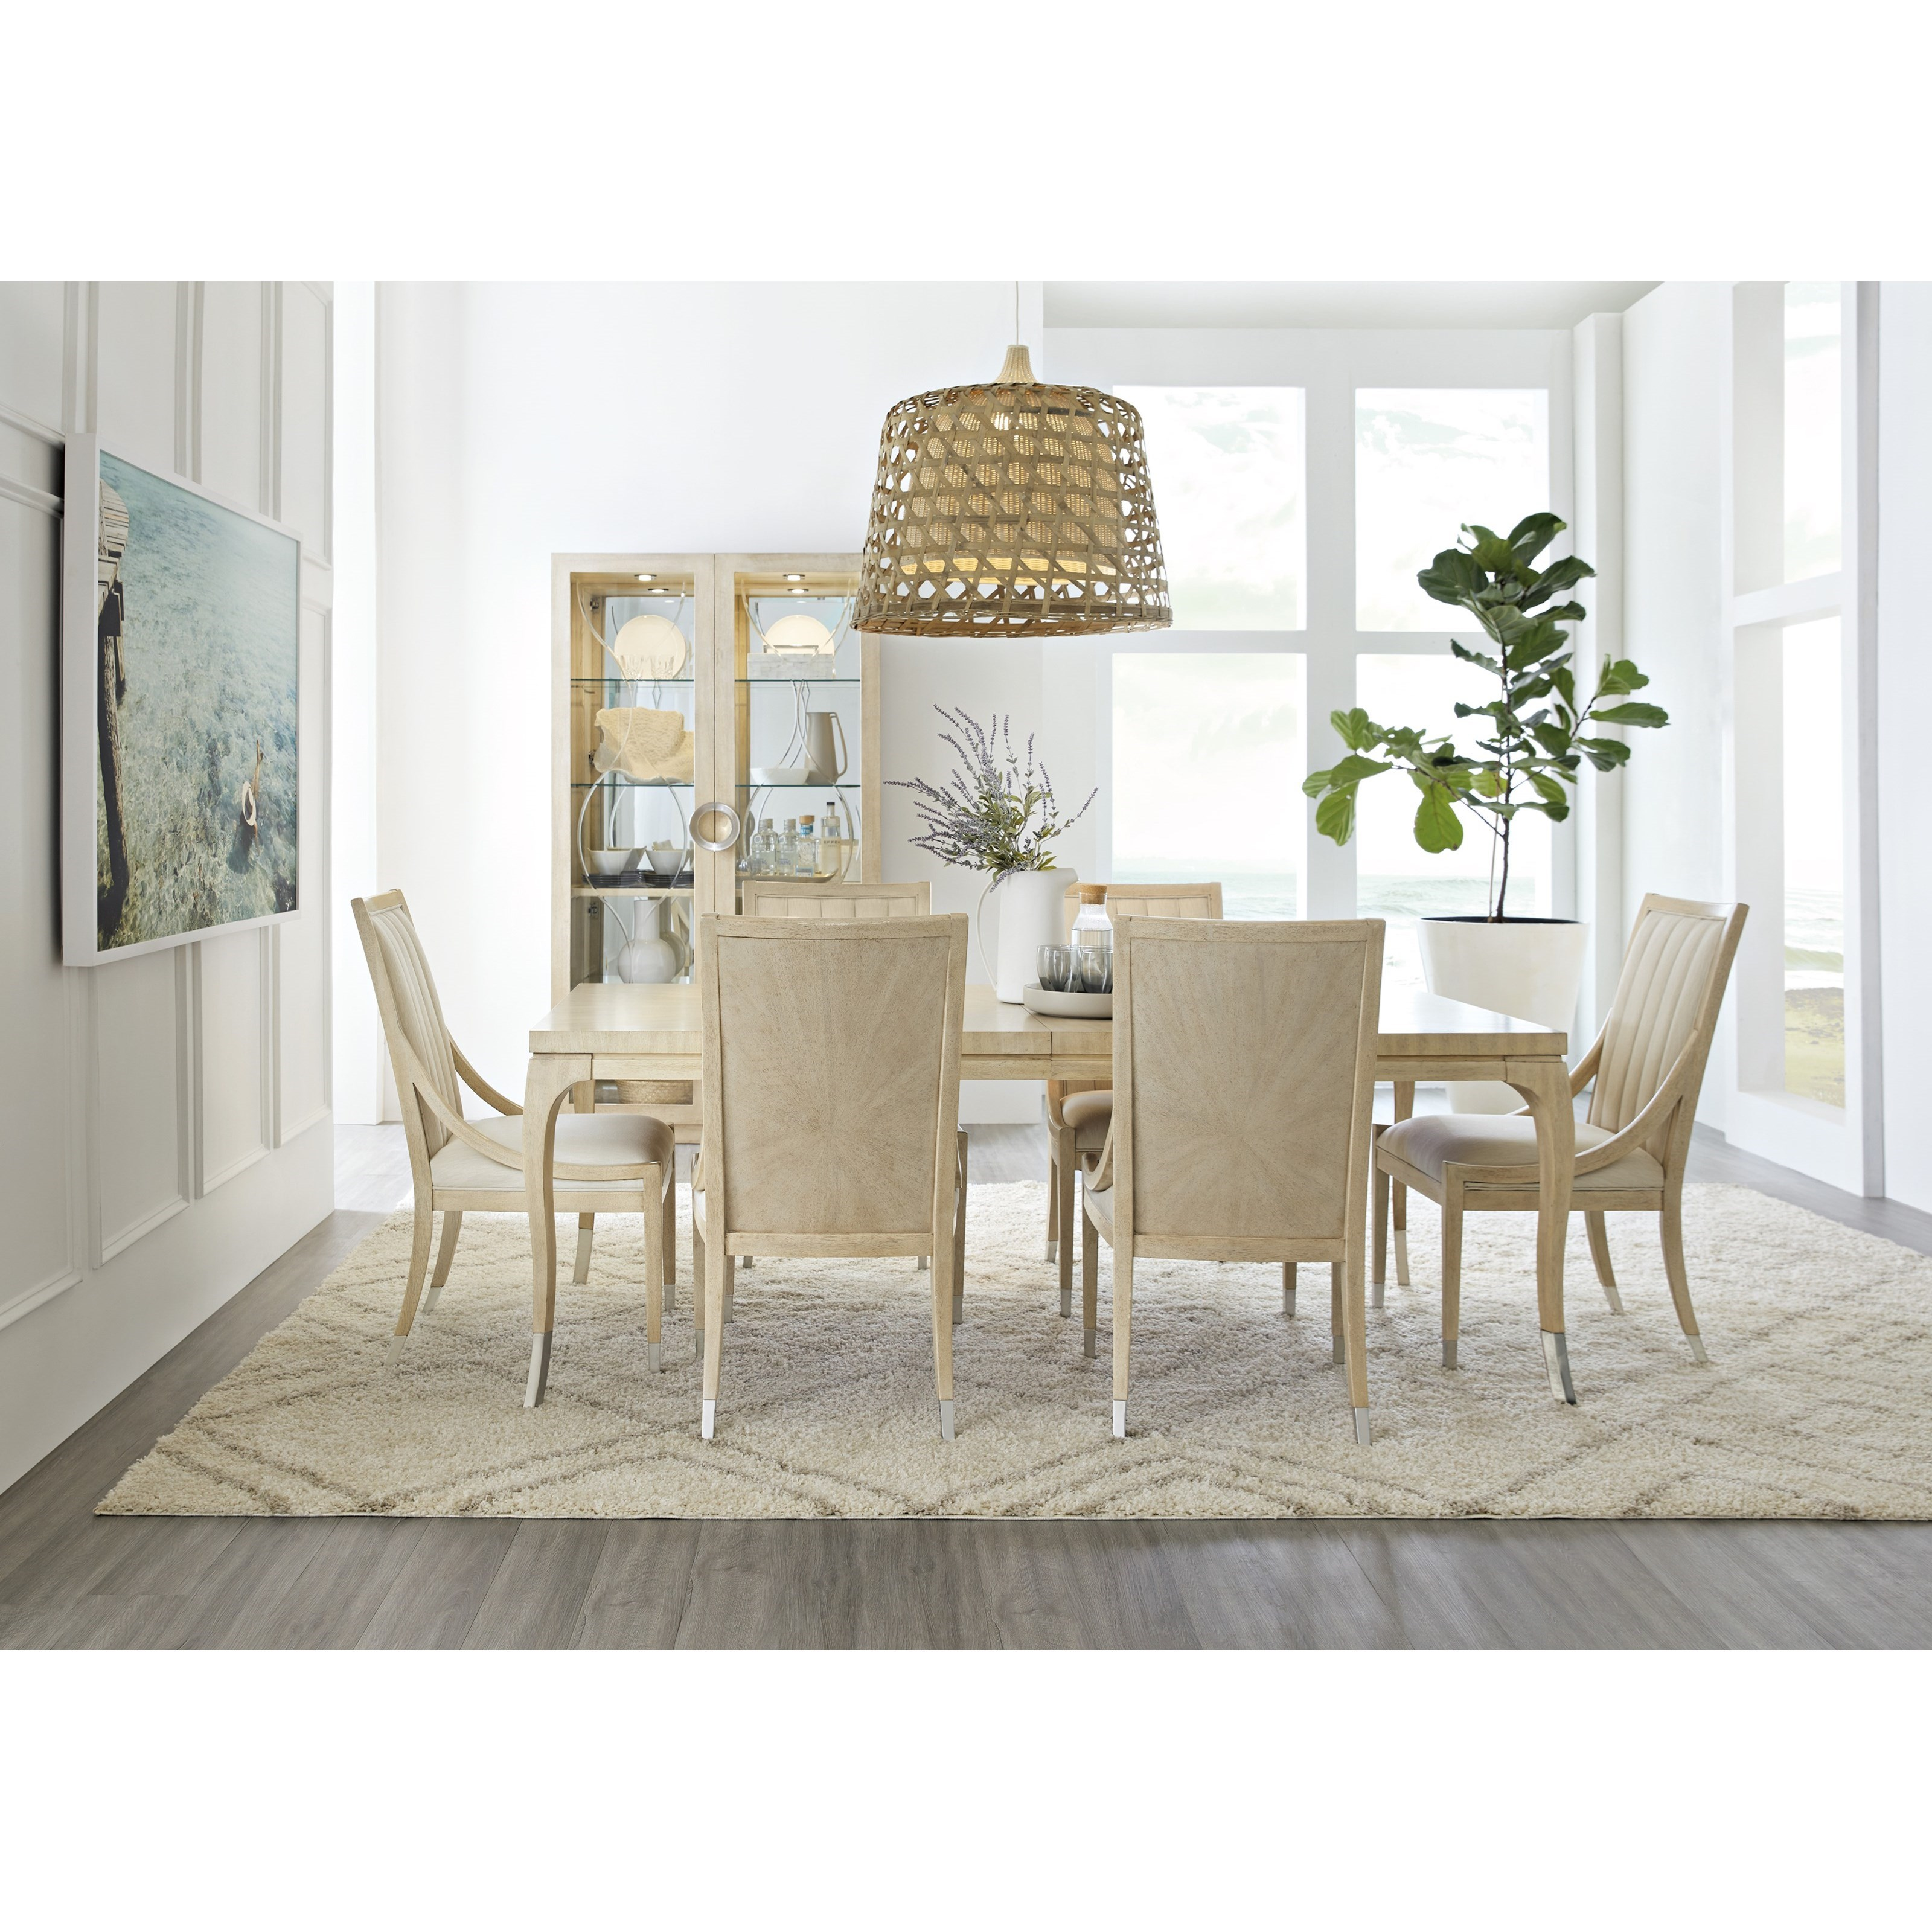 Awe Inspiring Newport Casual Dining Room Group Sprintz Furniture Gmtry Best Dining Table And Chair Ideas Images Gmtryco